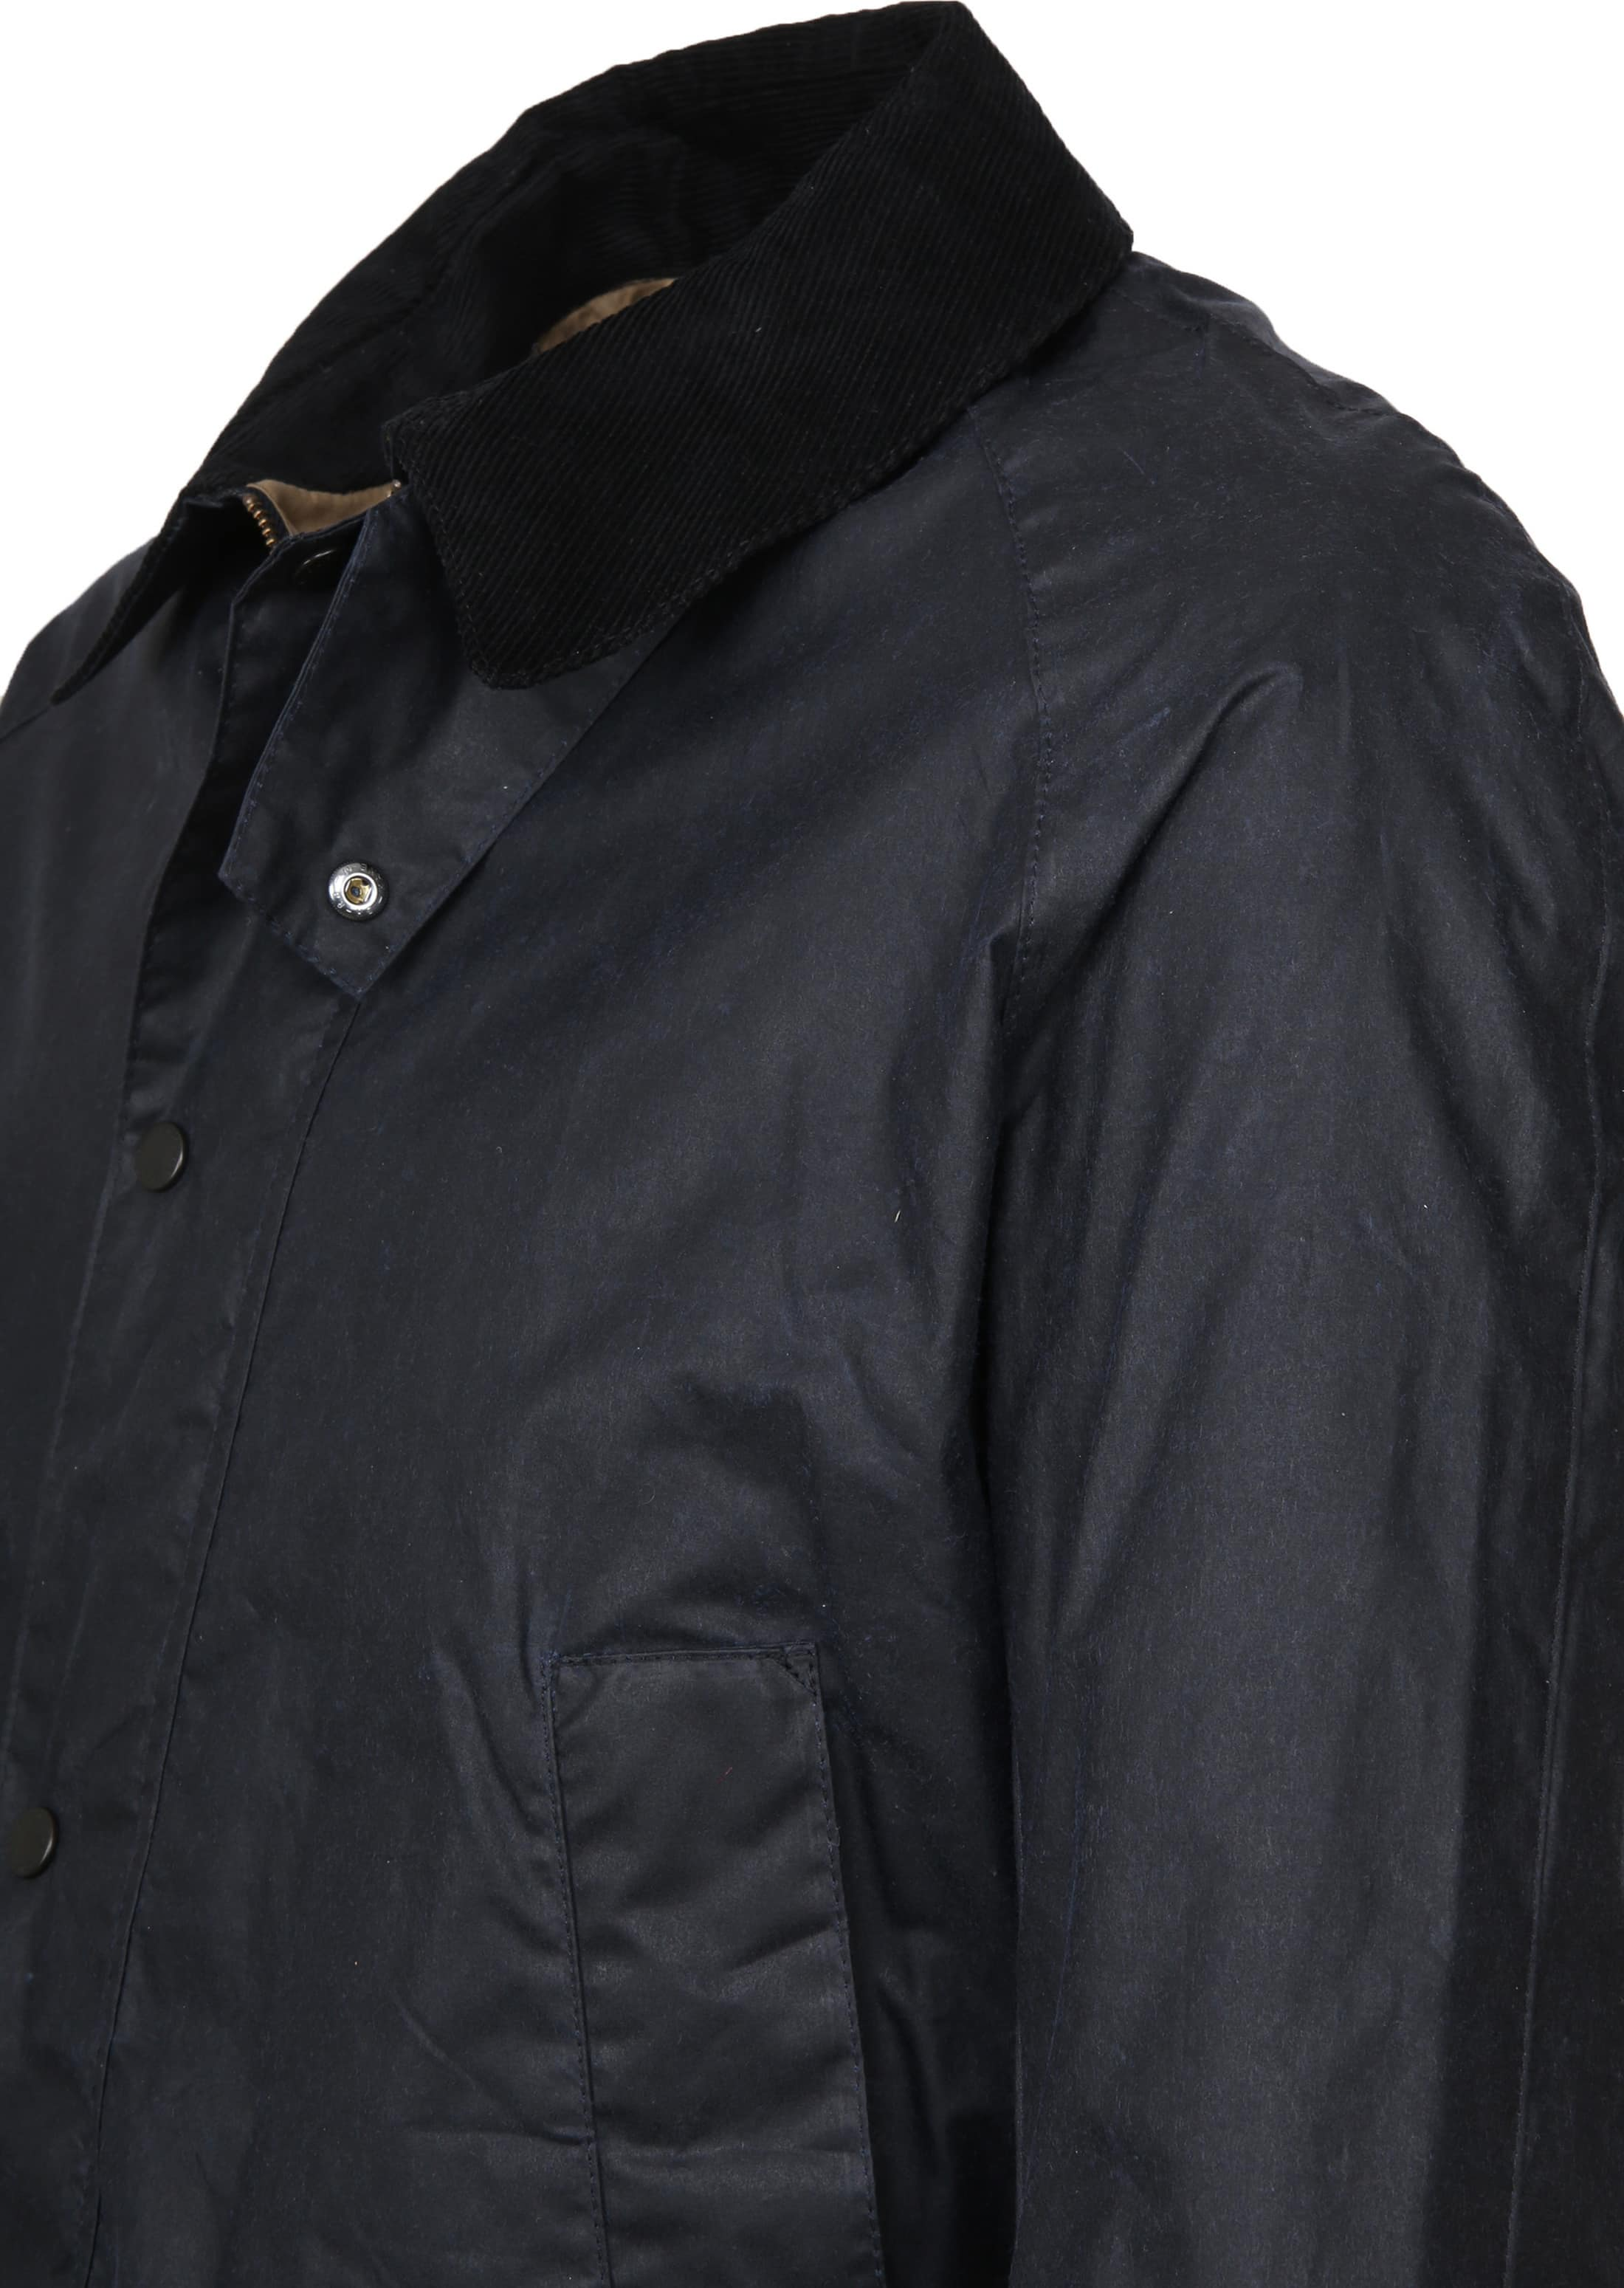 Barbour Waxjas Ashby Navy foto 3